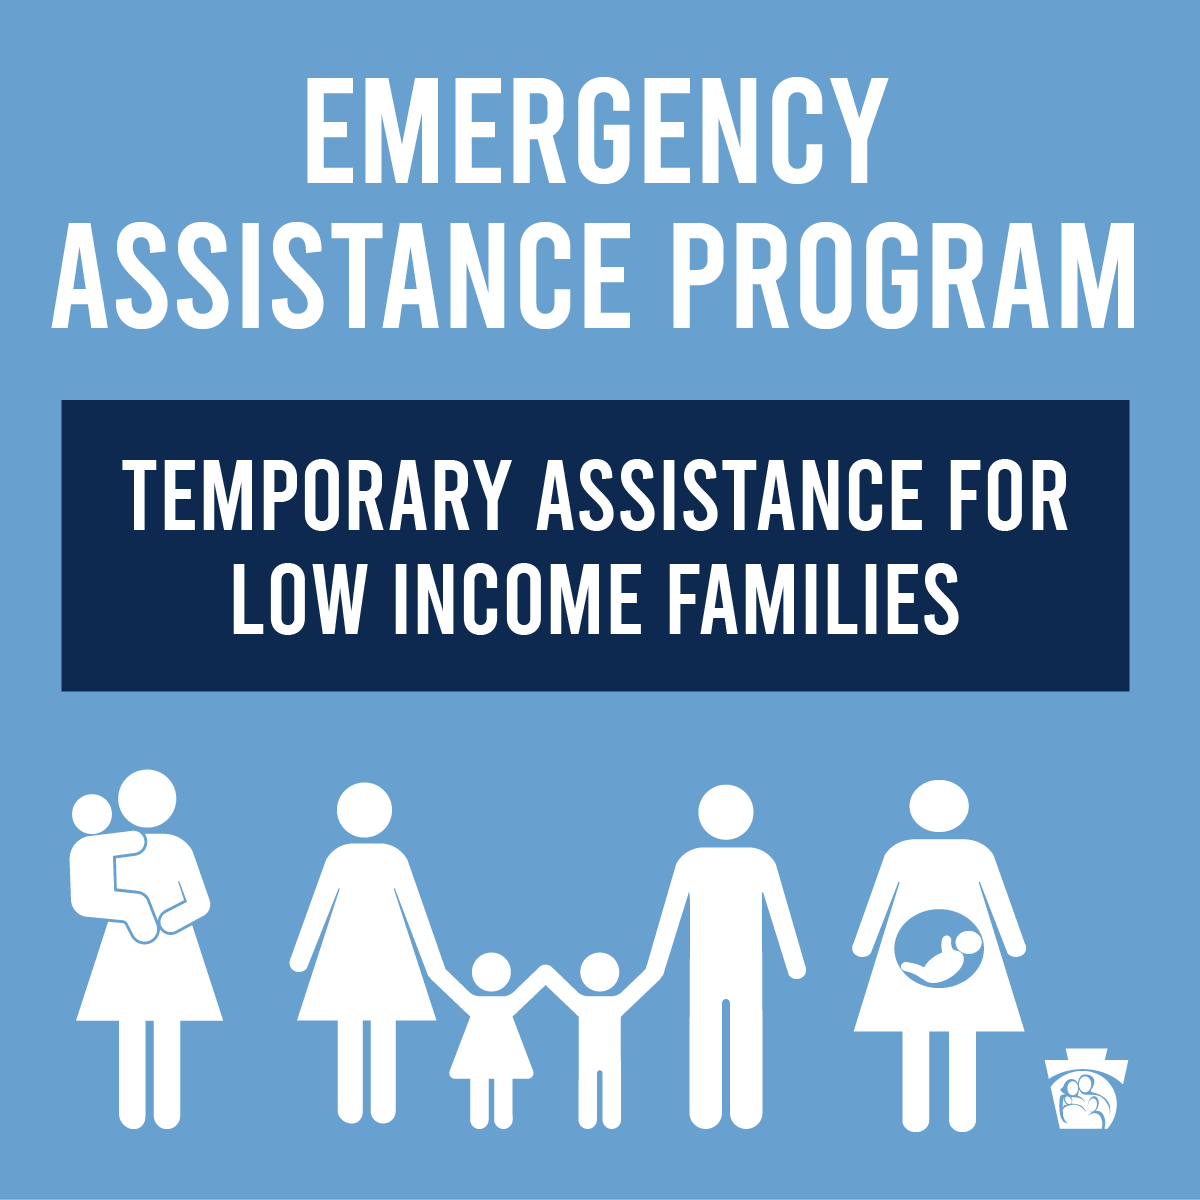 Human Services Launches Emergency Assistance Program